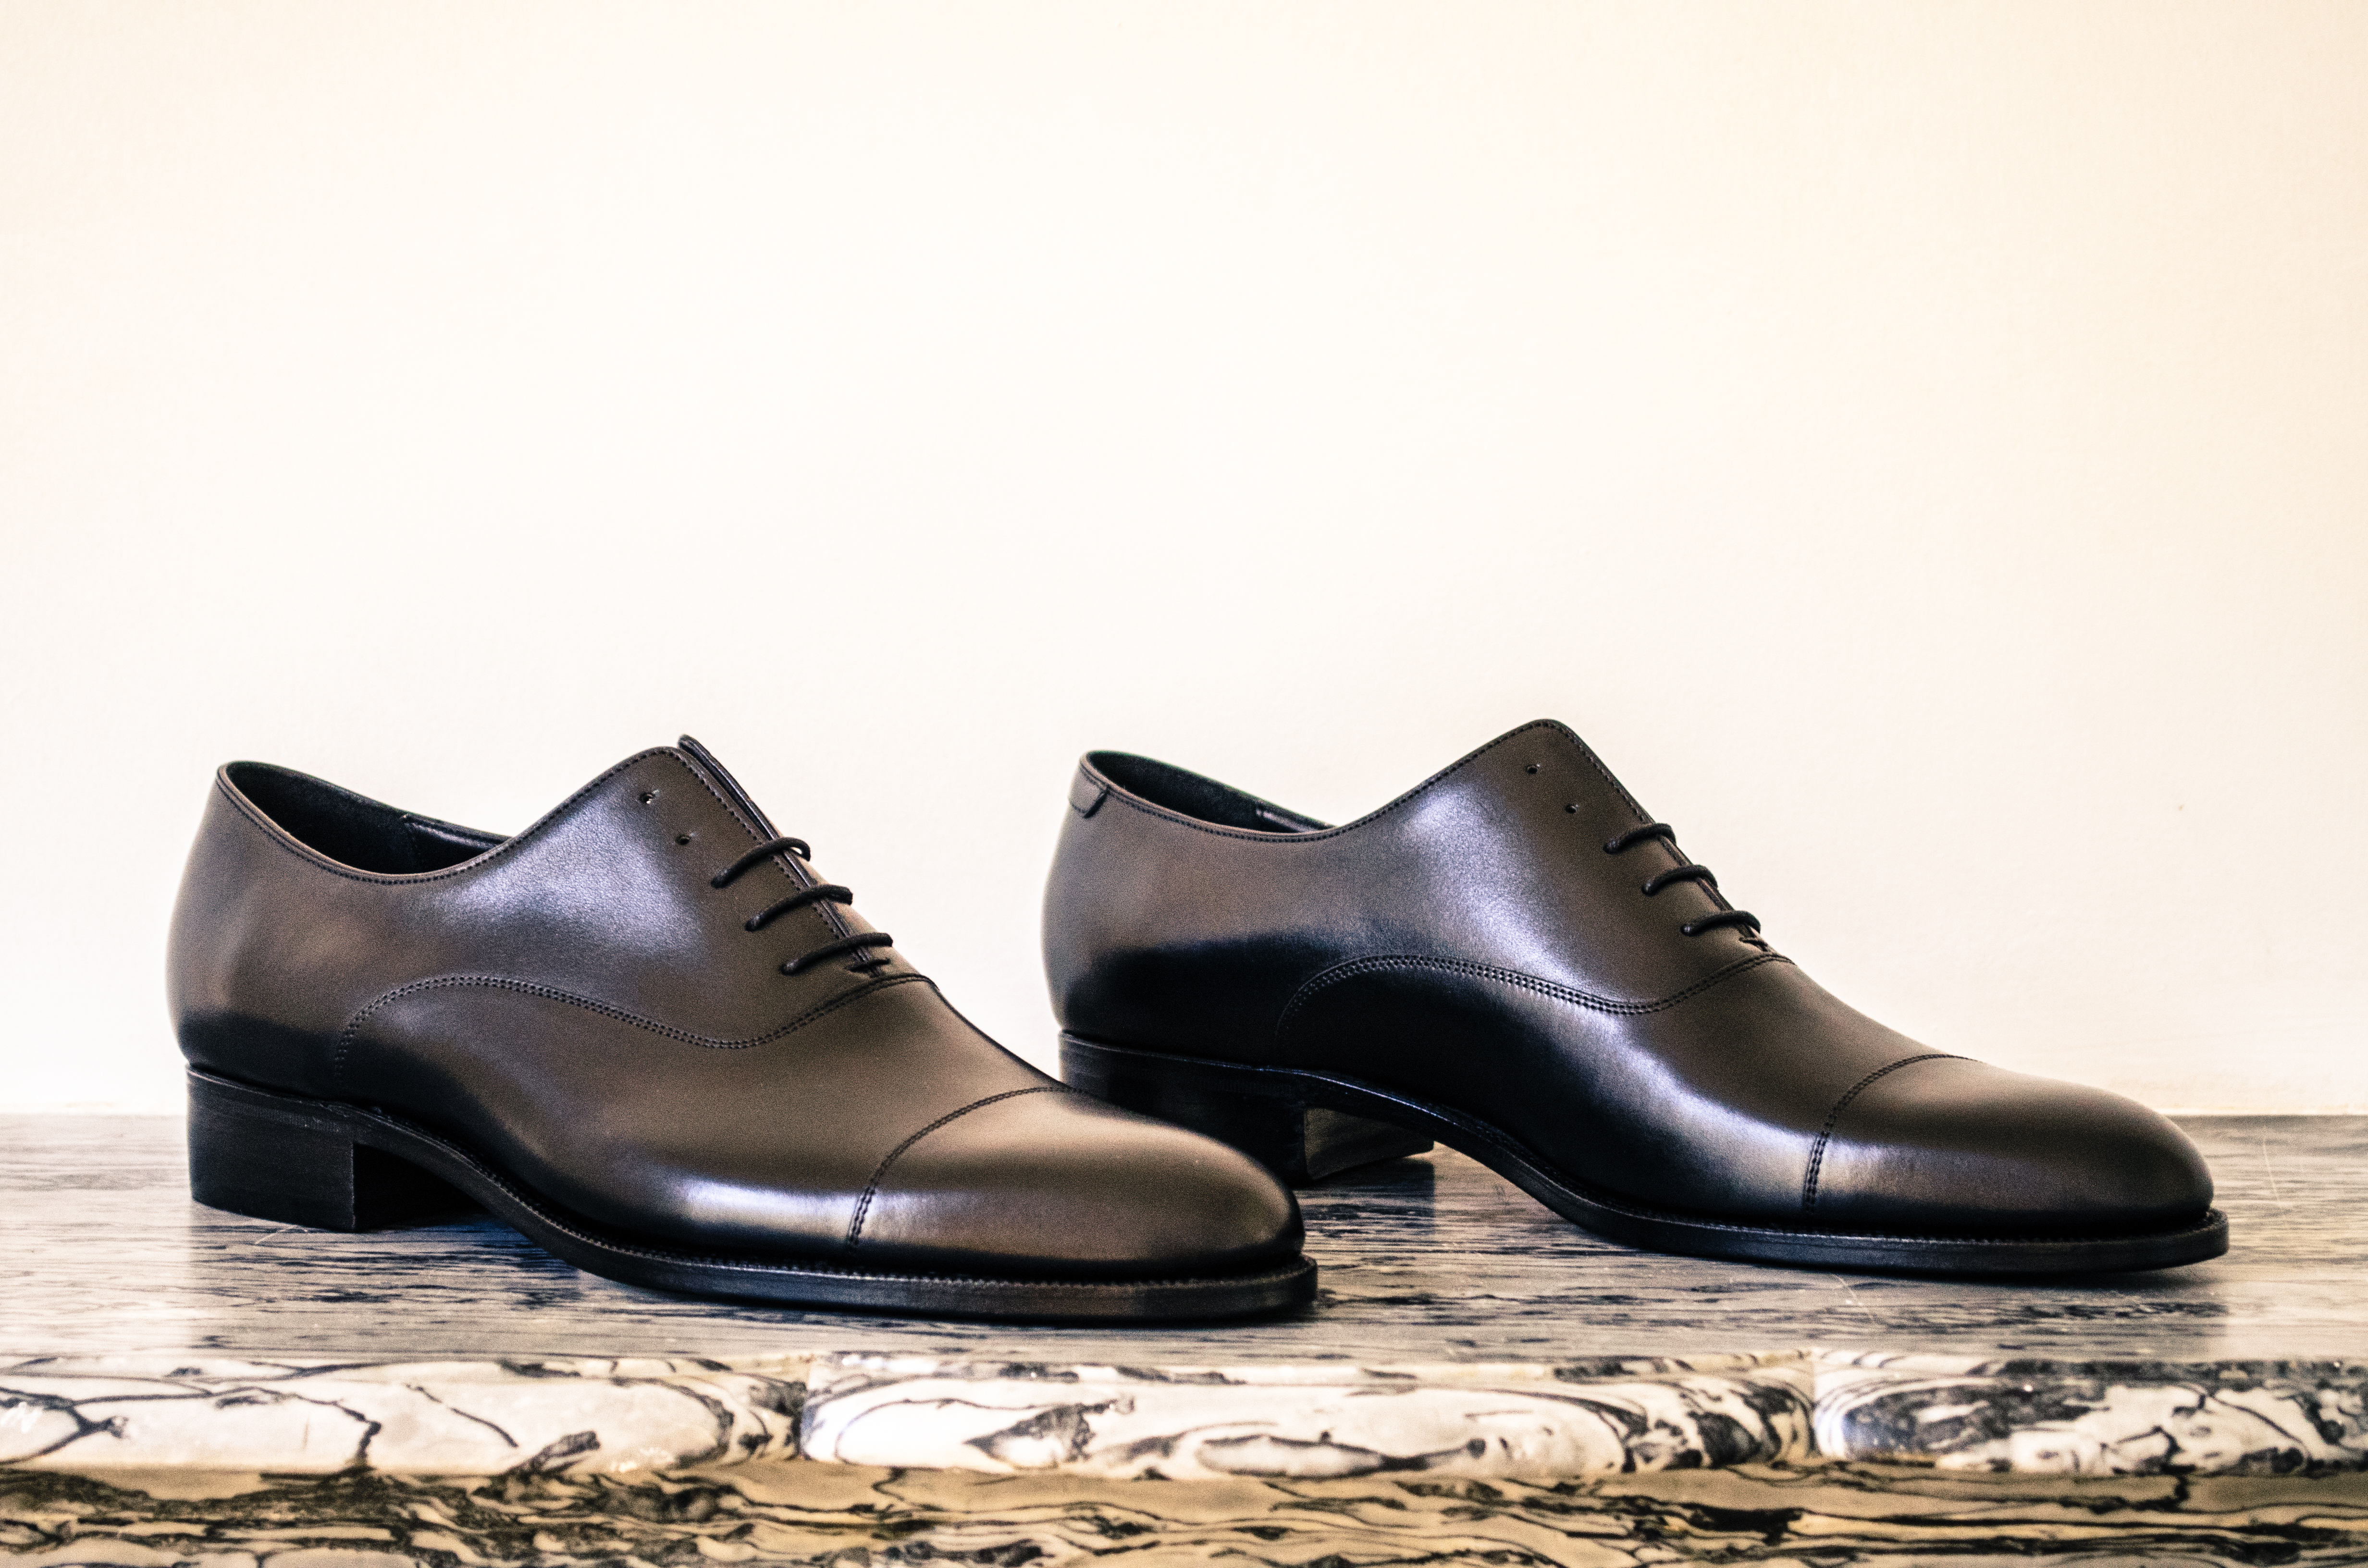 Richelieu Mauban made in France Oxford